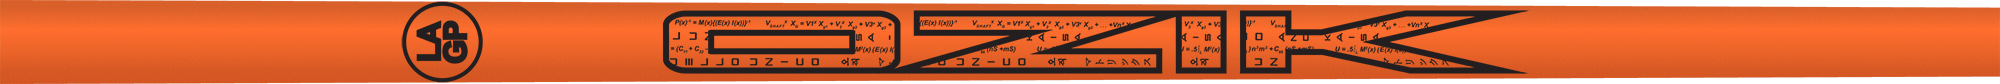 Ozik Red Tie: Neon Orange Black Matte - Wood 60 R